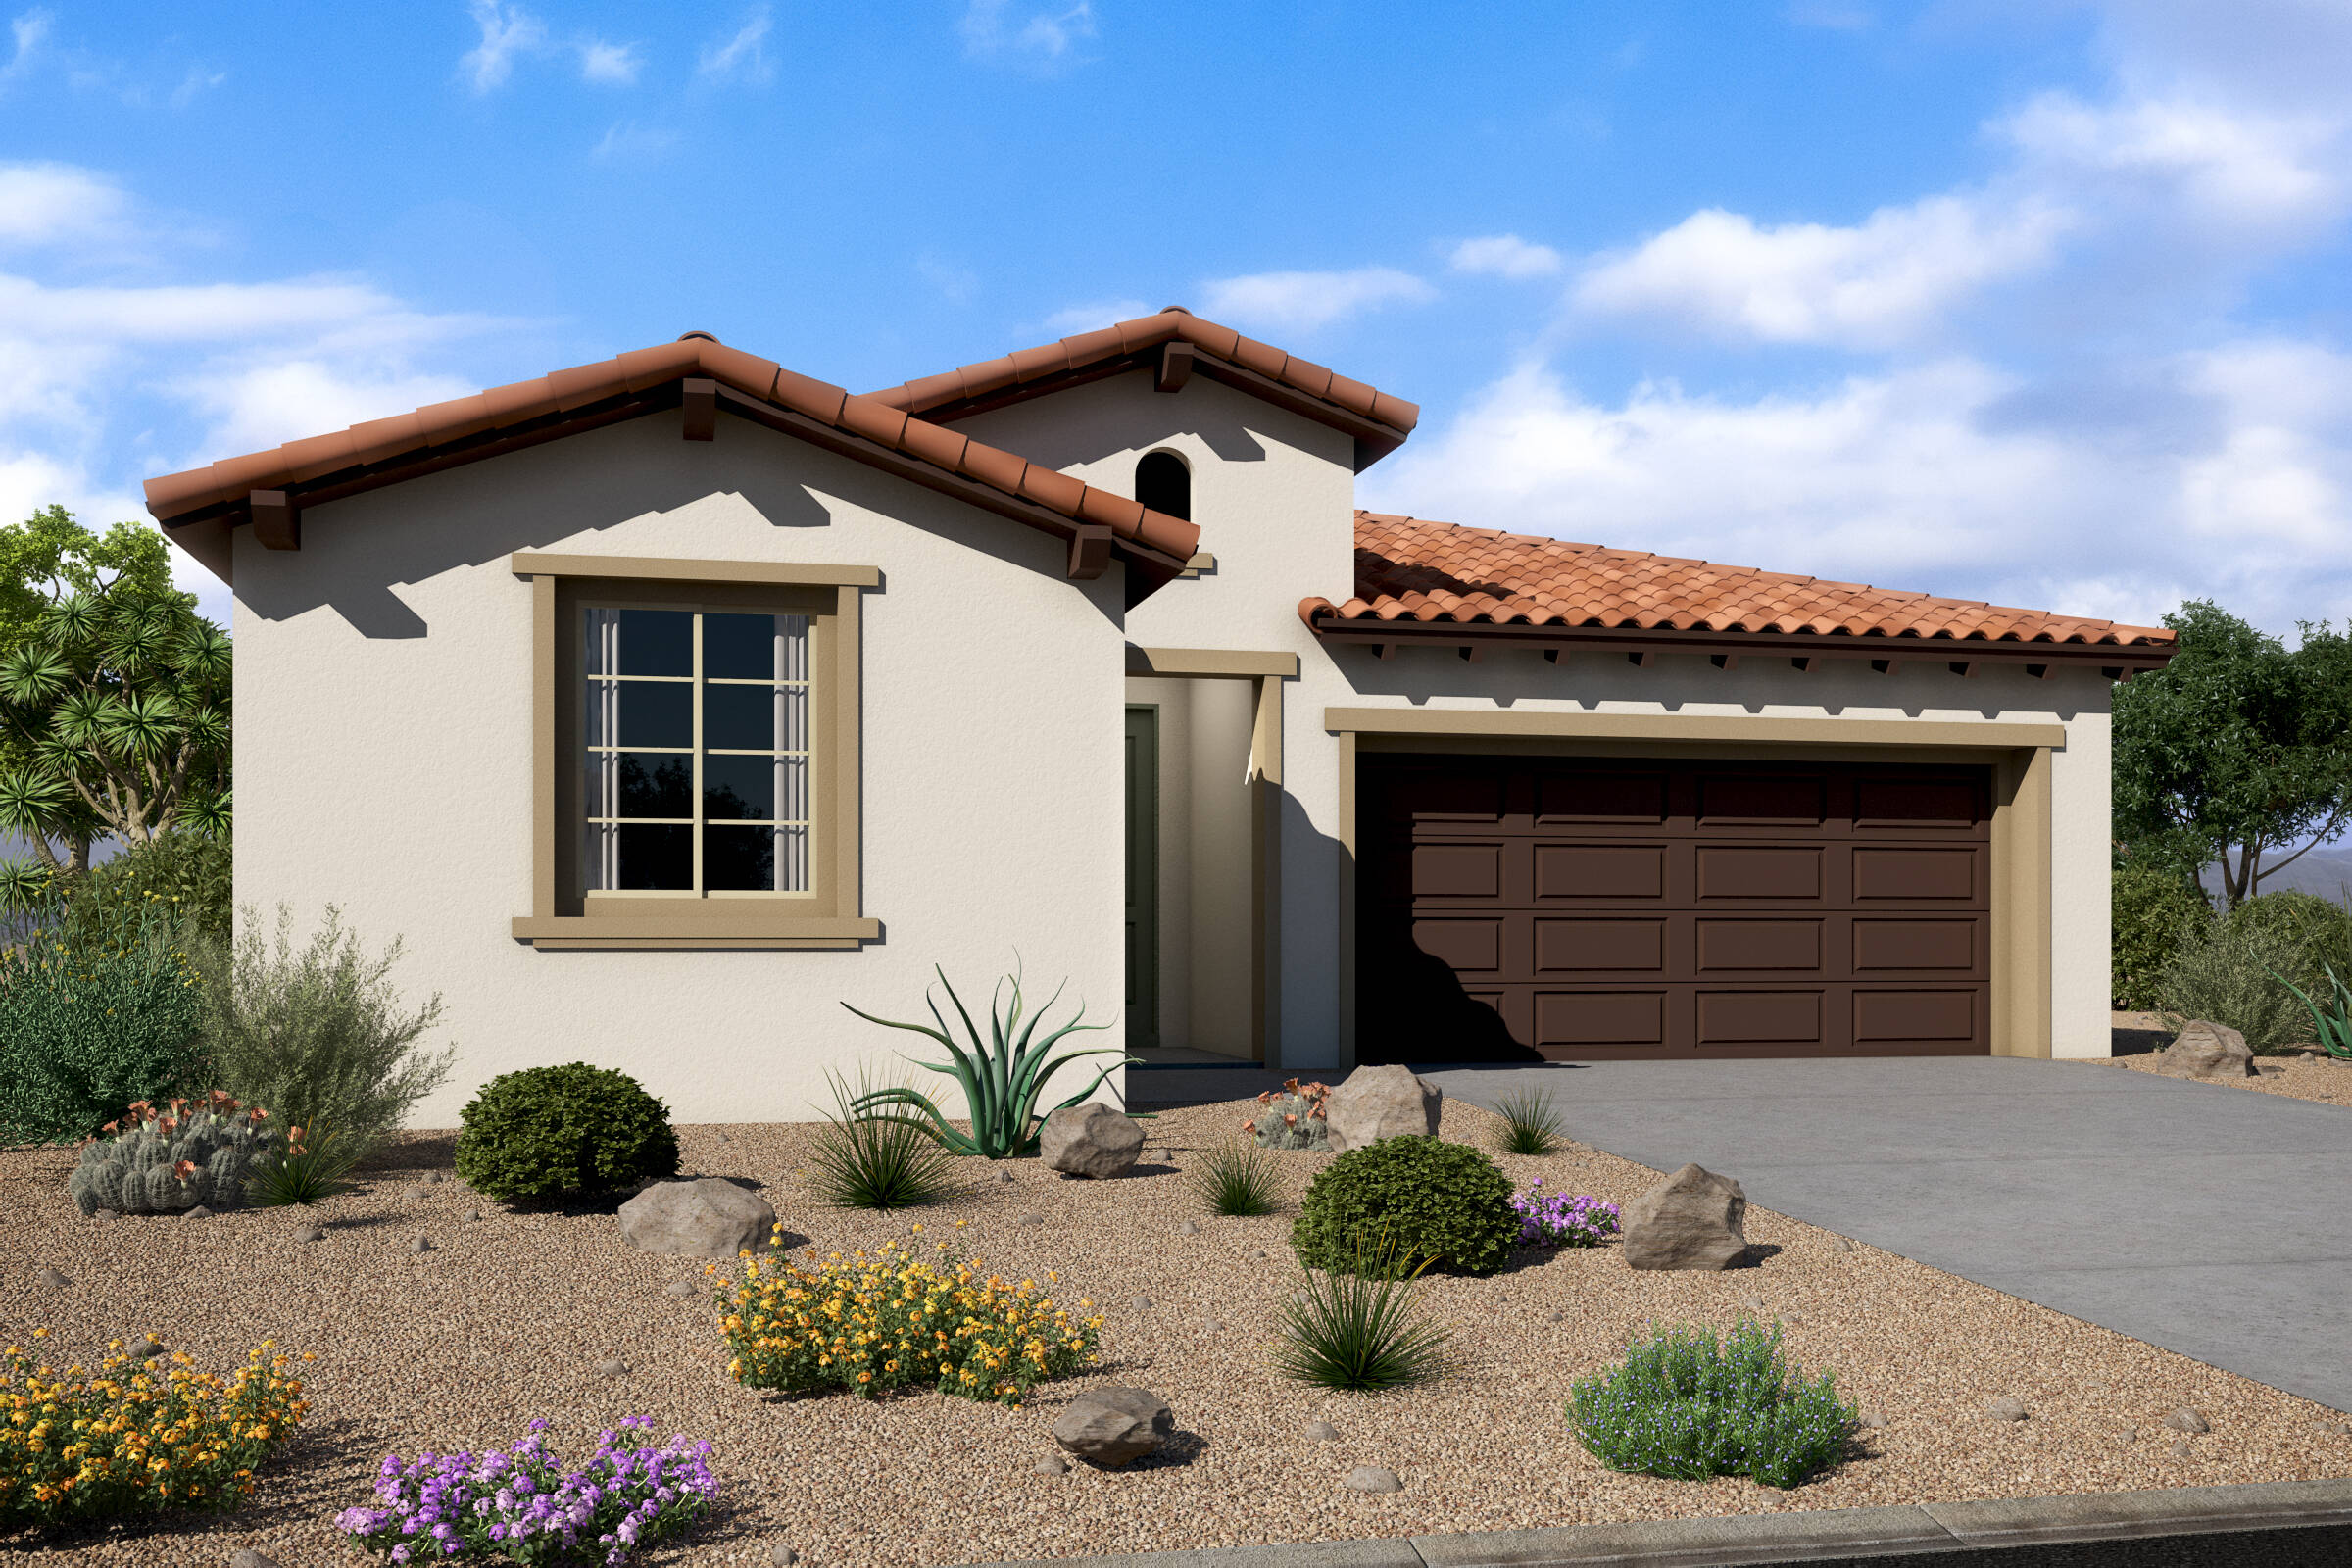 accord spanish hacienda b new homes affinity at verrado